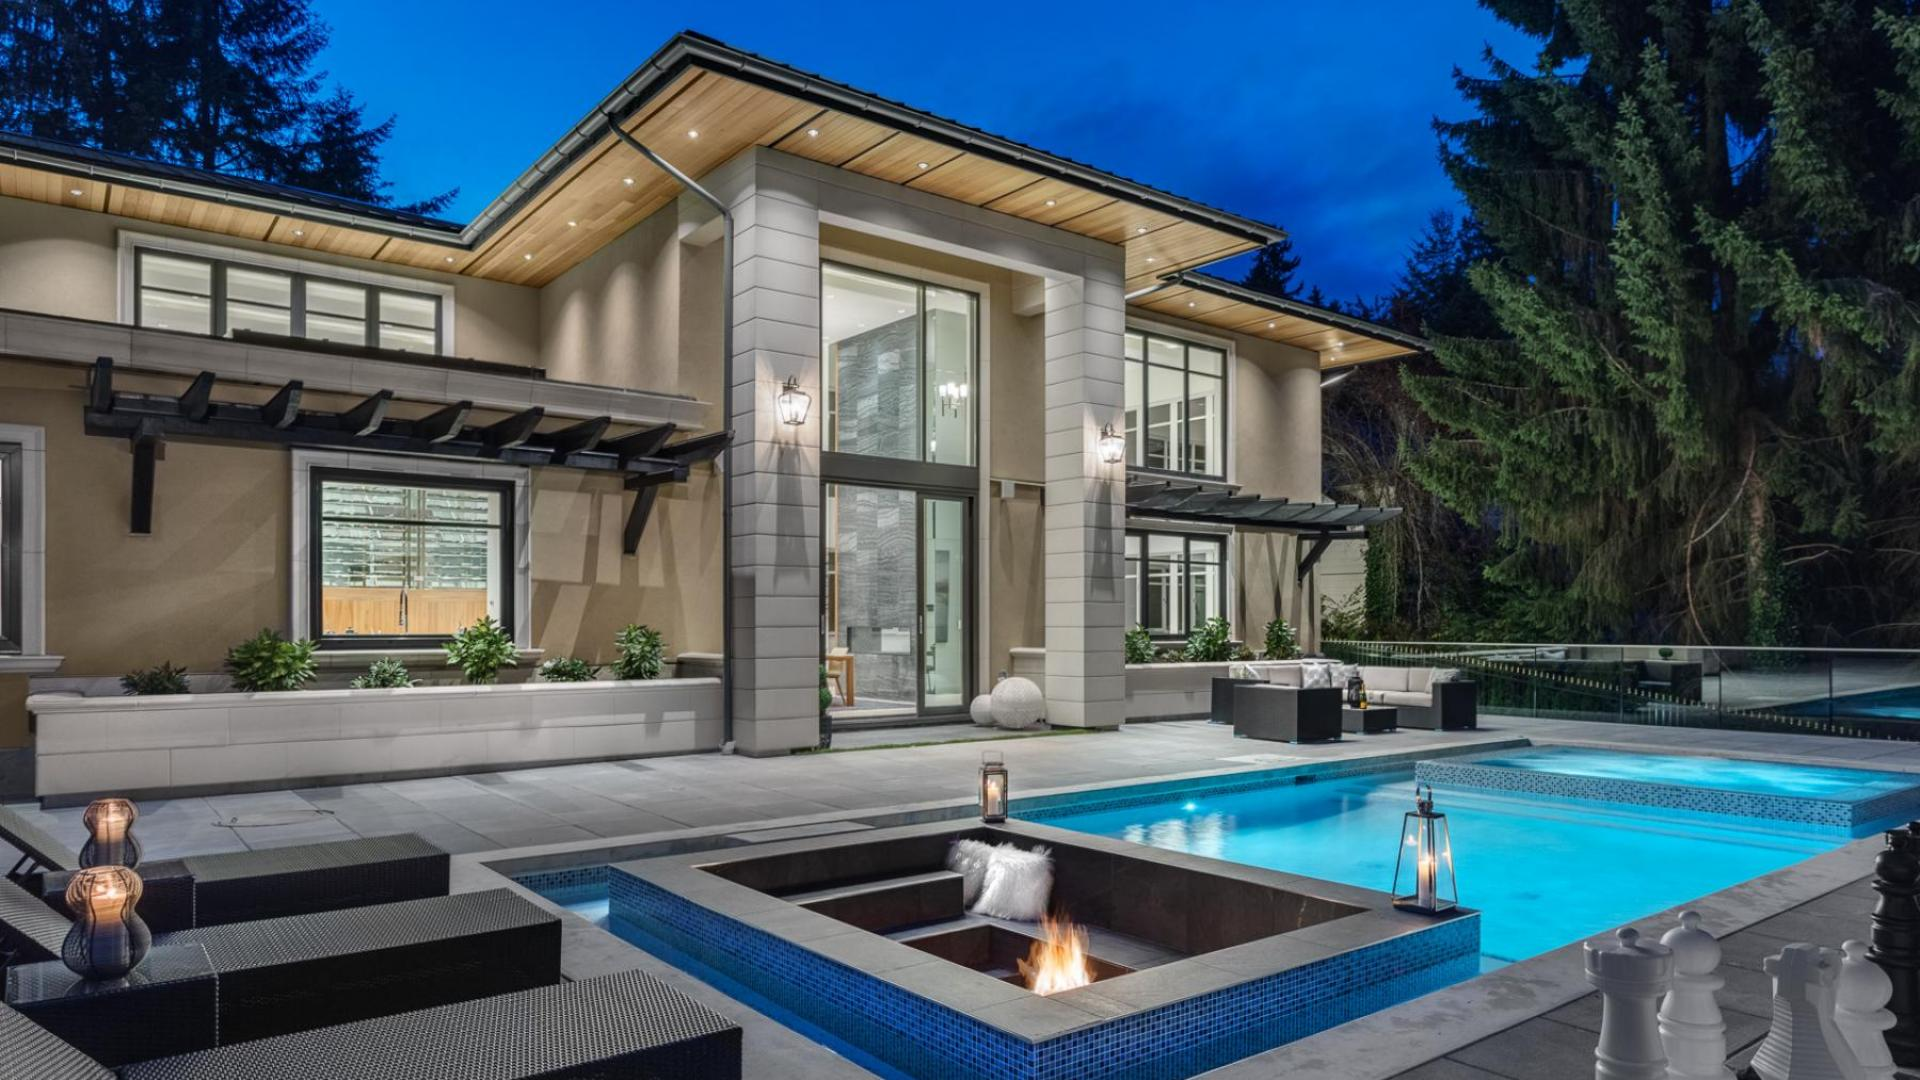 595 King Georges Way, British Properties (British Properties), West Vancouver